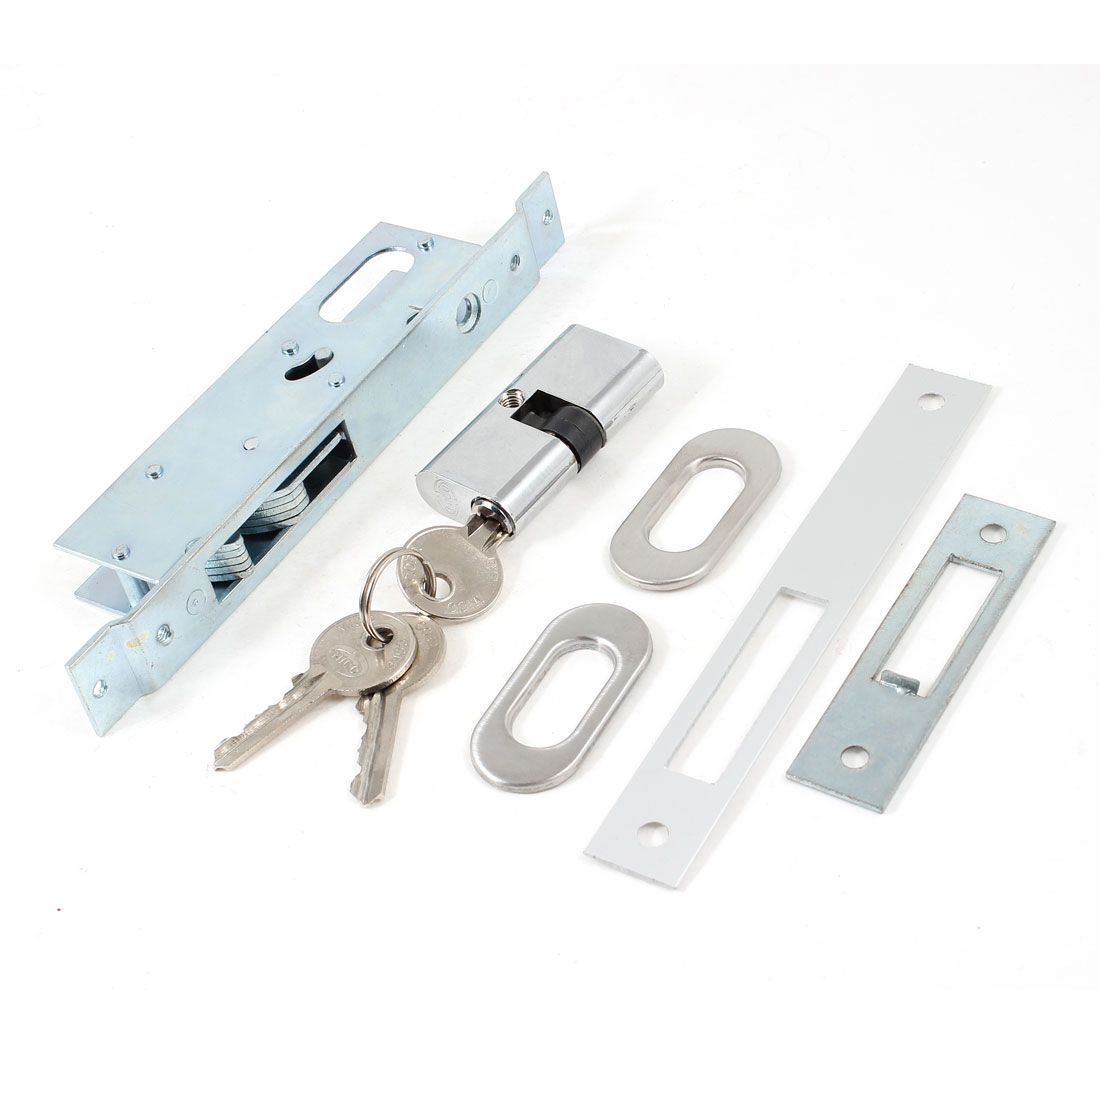 "Metal Sliding Door Hook Lock Deadbolt 23mm 0.91"" Backset w Keys"